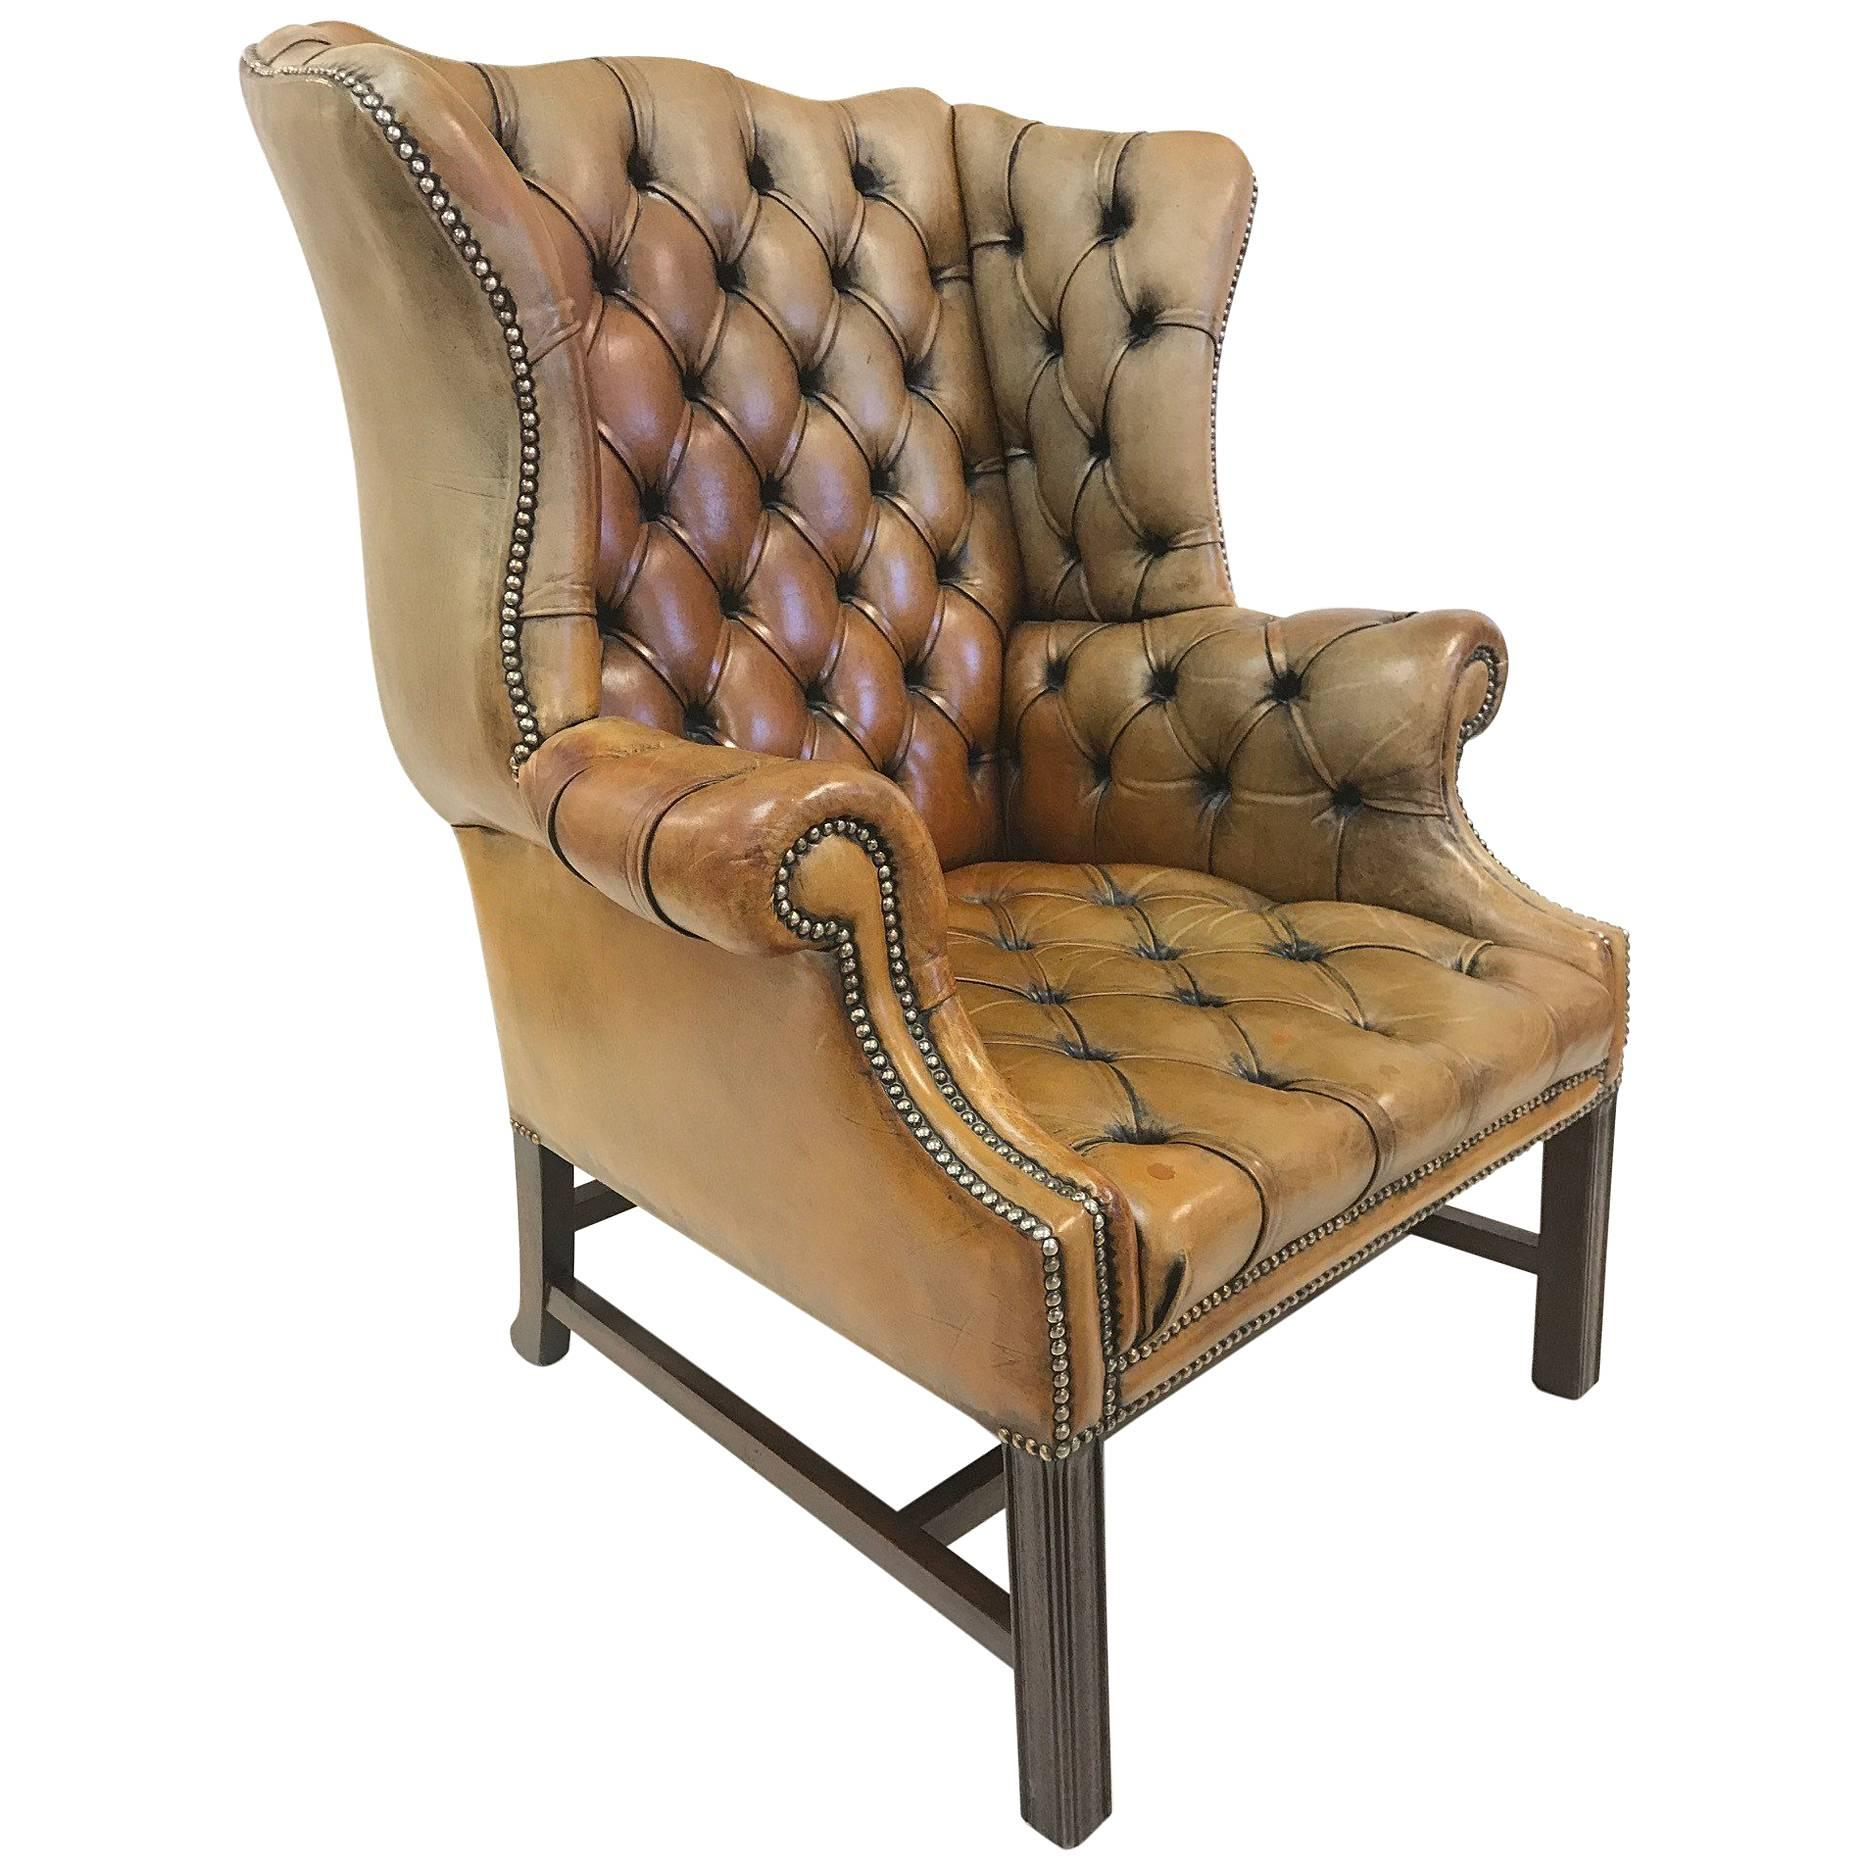 Chippendale Wingback Chairs 23 For Sale at 1stdibs